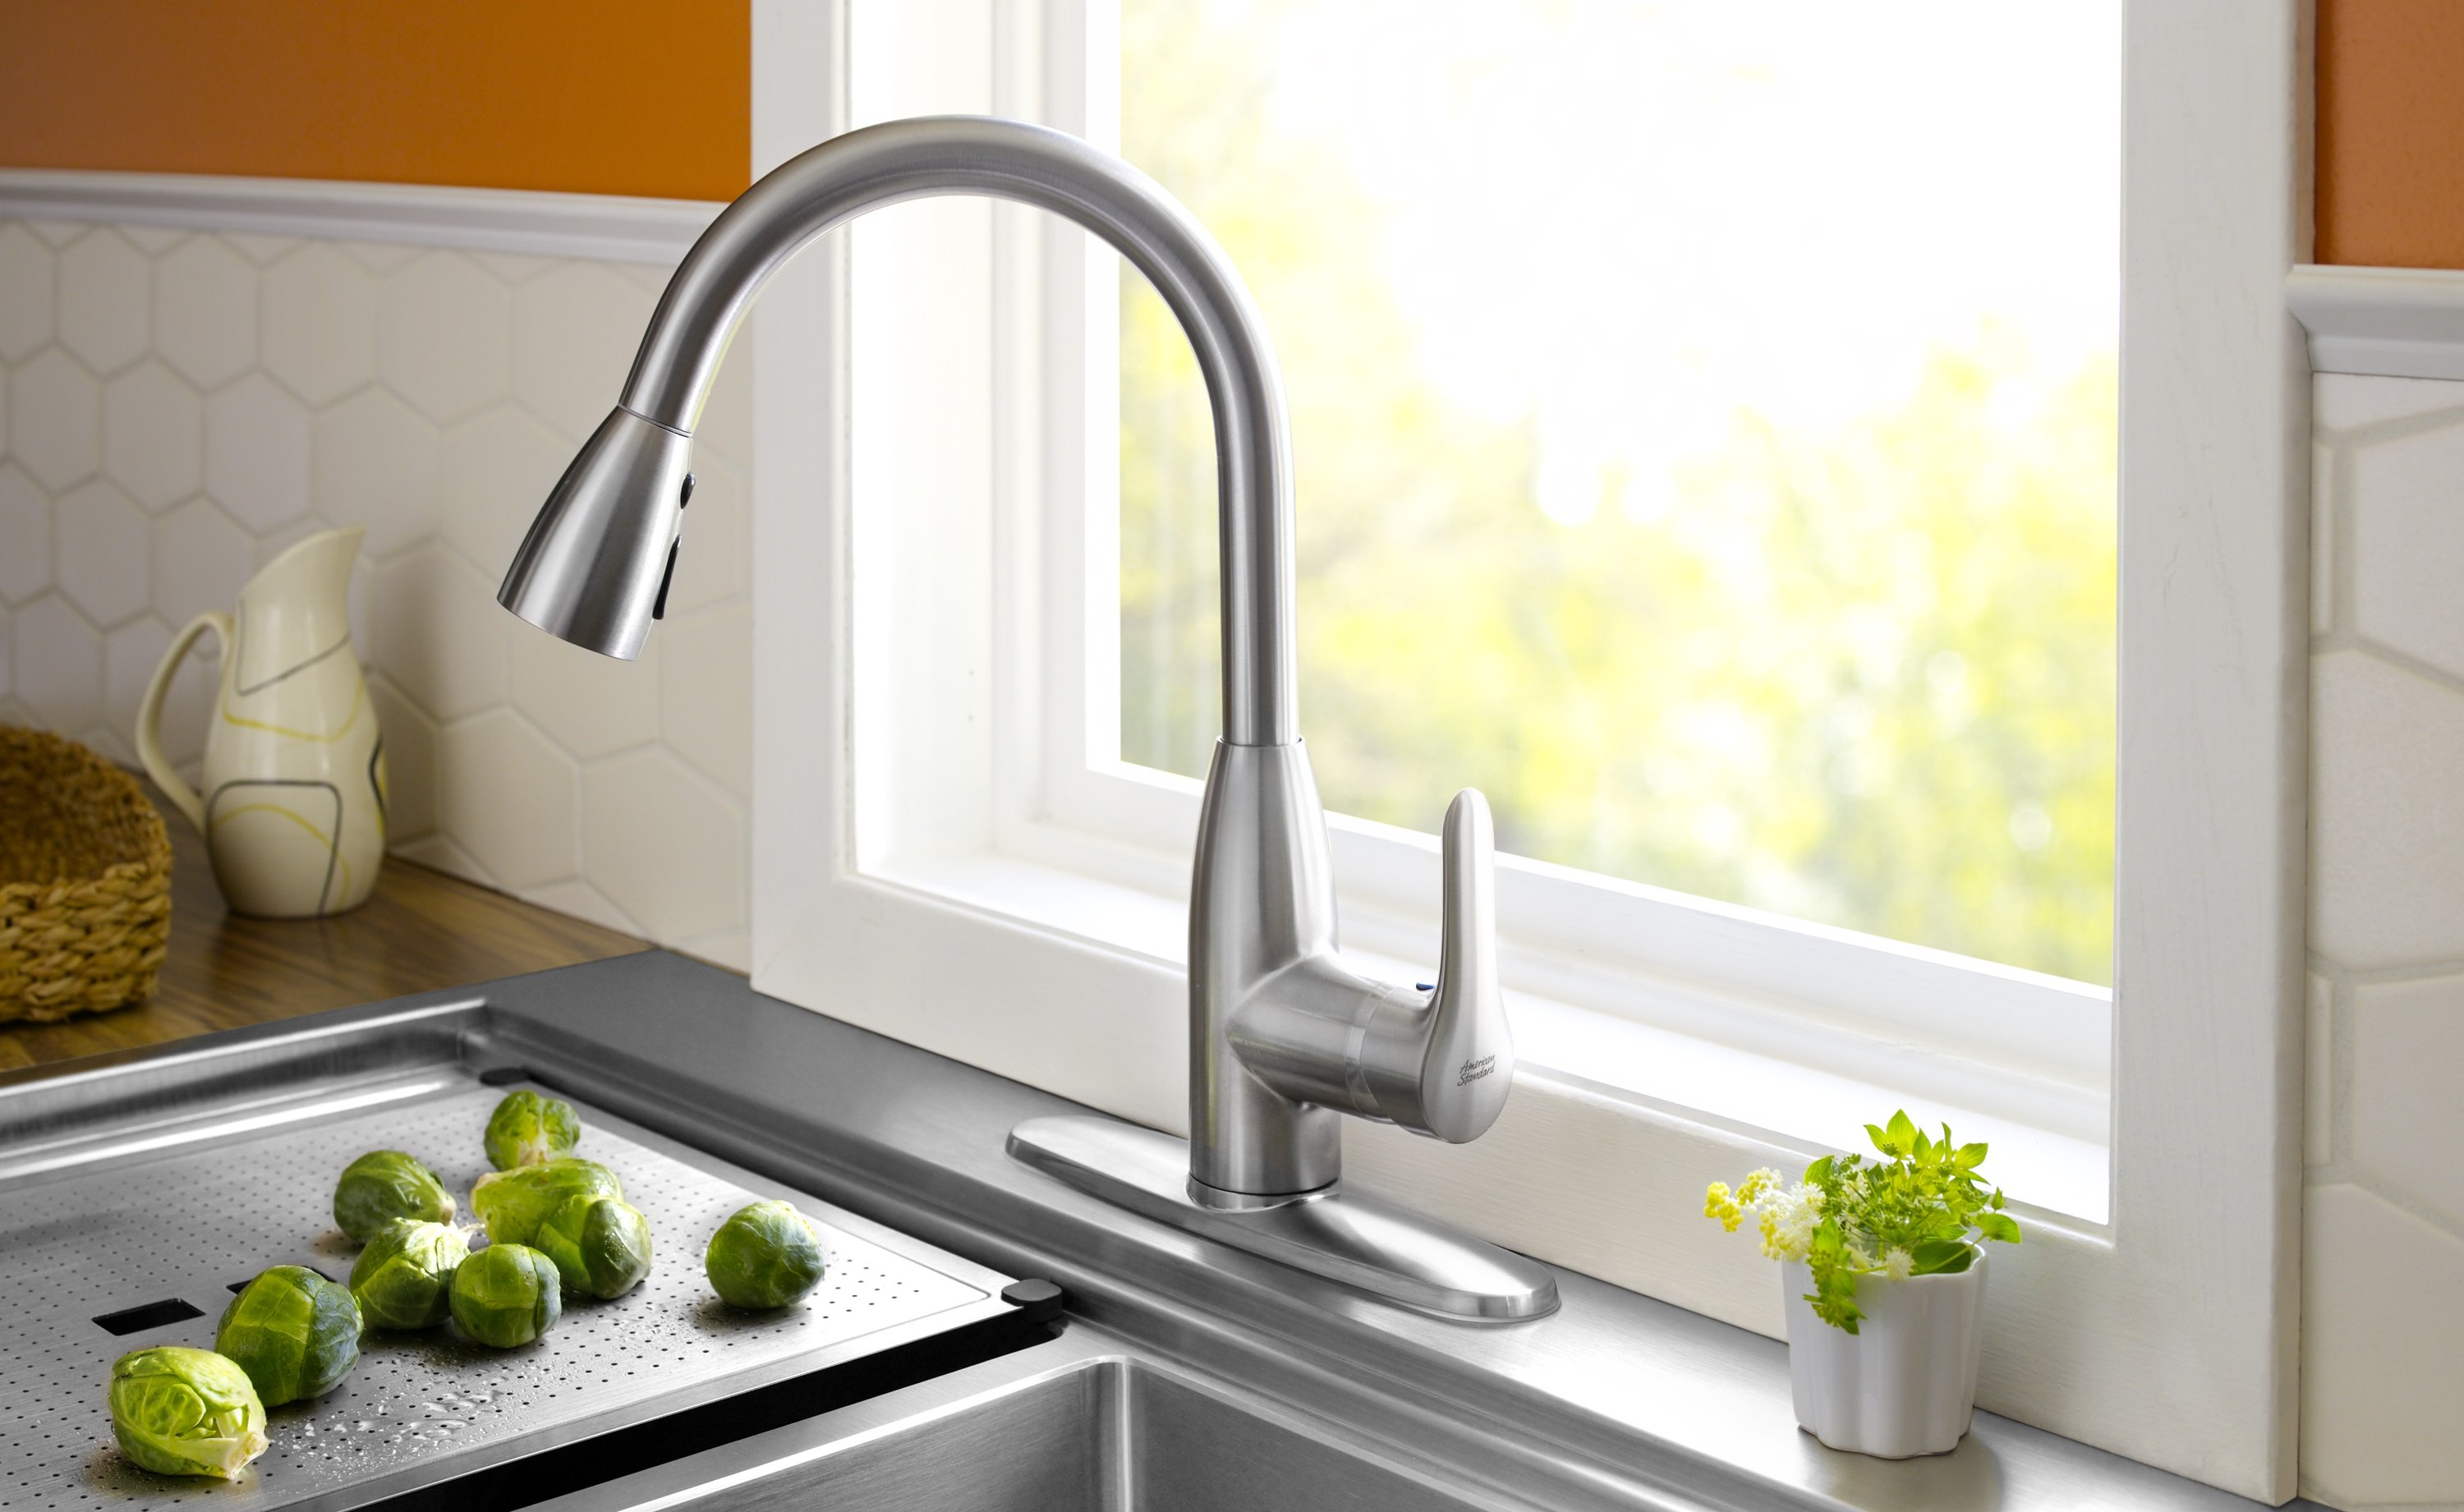 Marvelous A Stainless Steel Colony Faucet With A Kitchen Sink